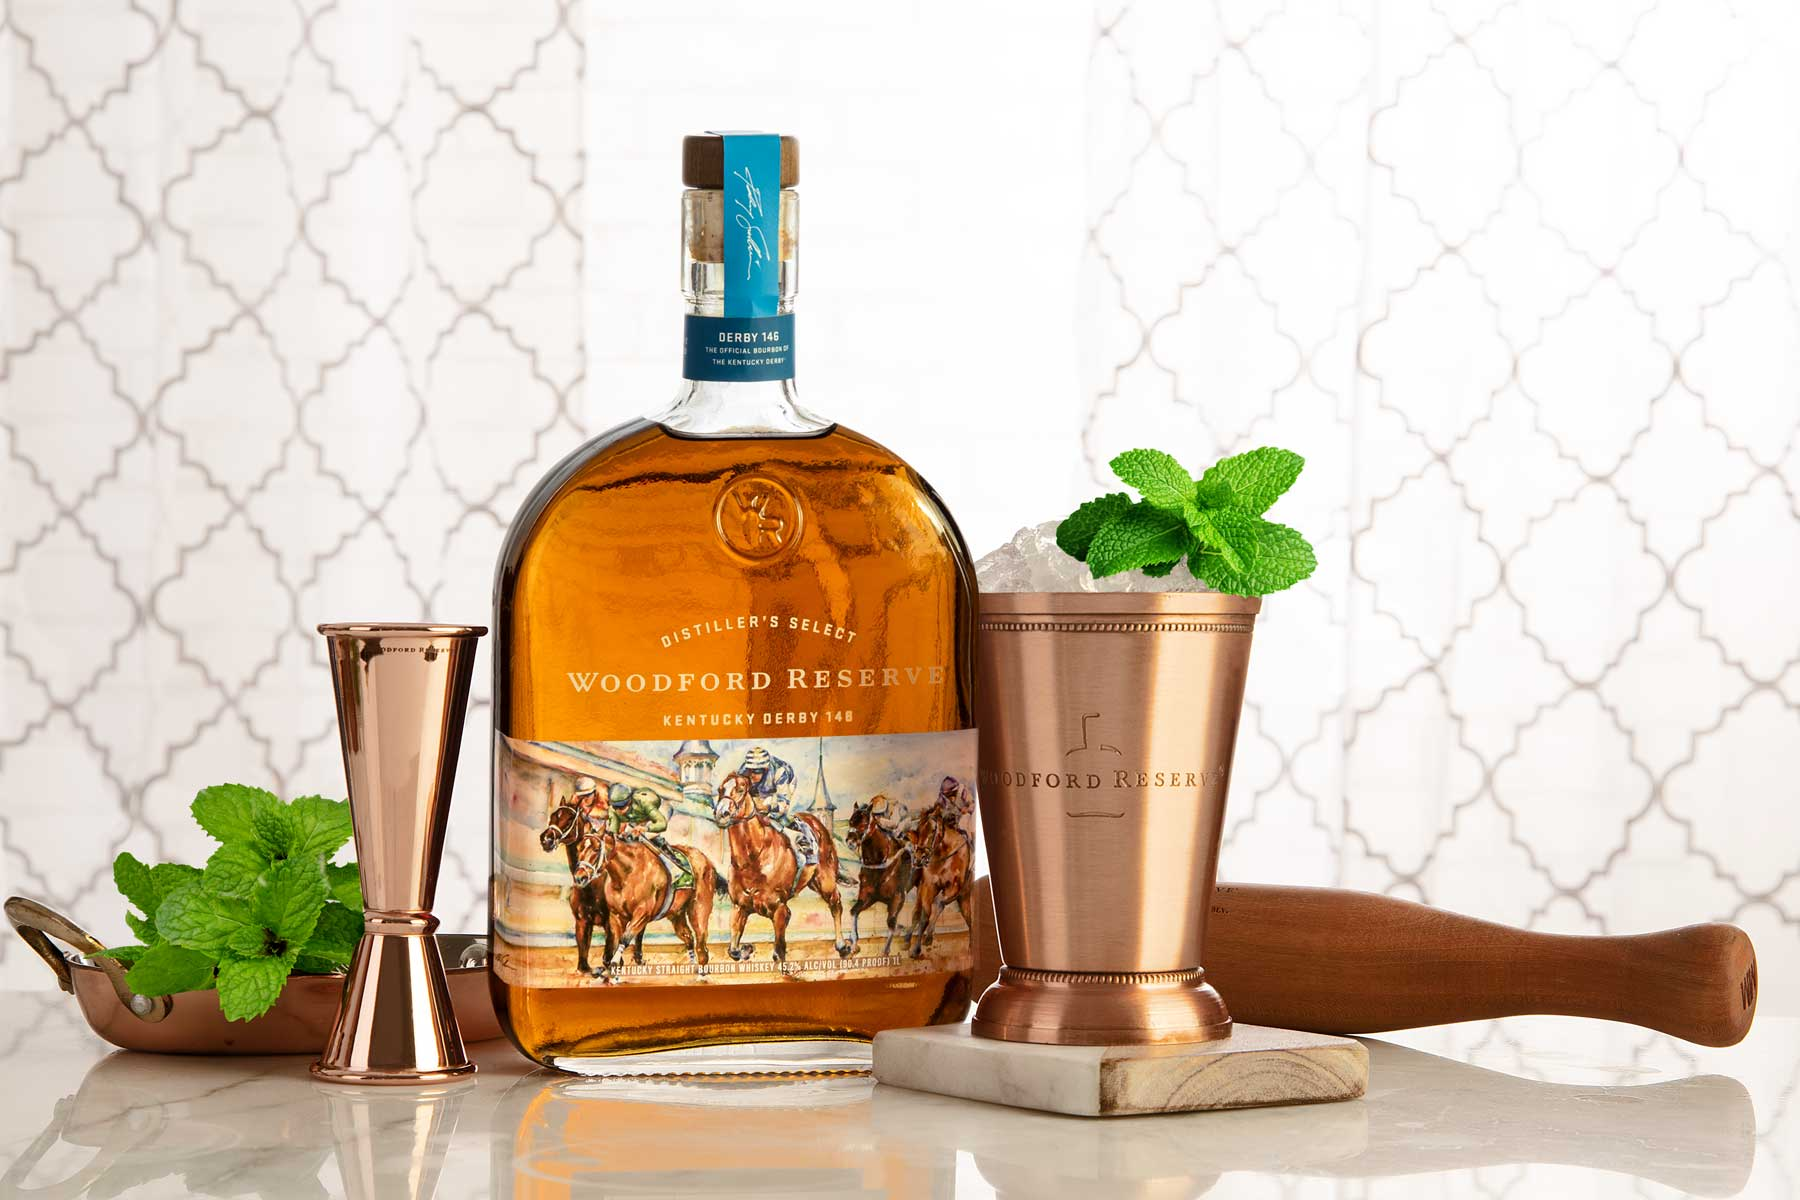 Image of Woodford Reserve Bottle for Kentucky Derby with commemorative cups